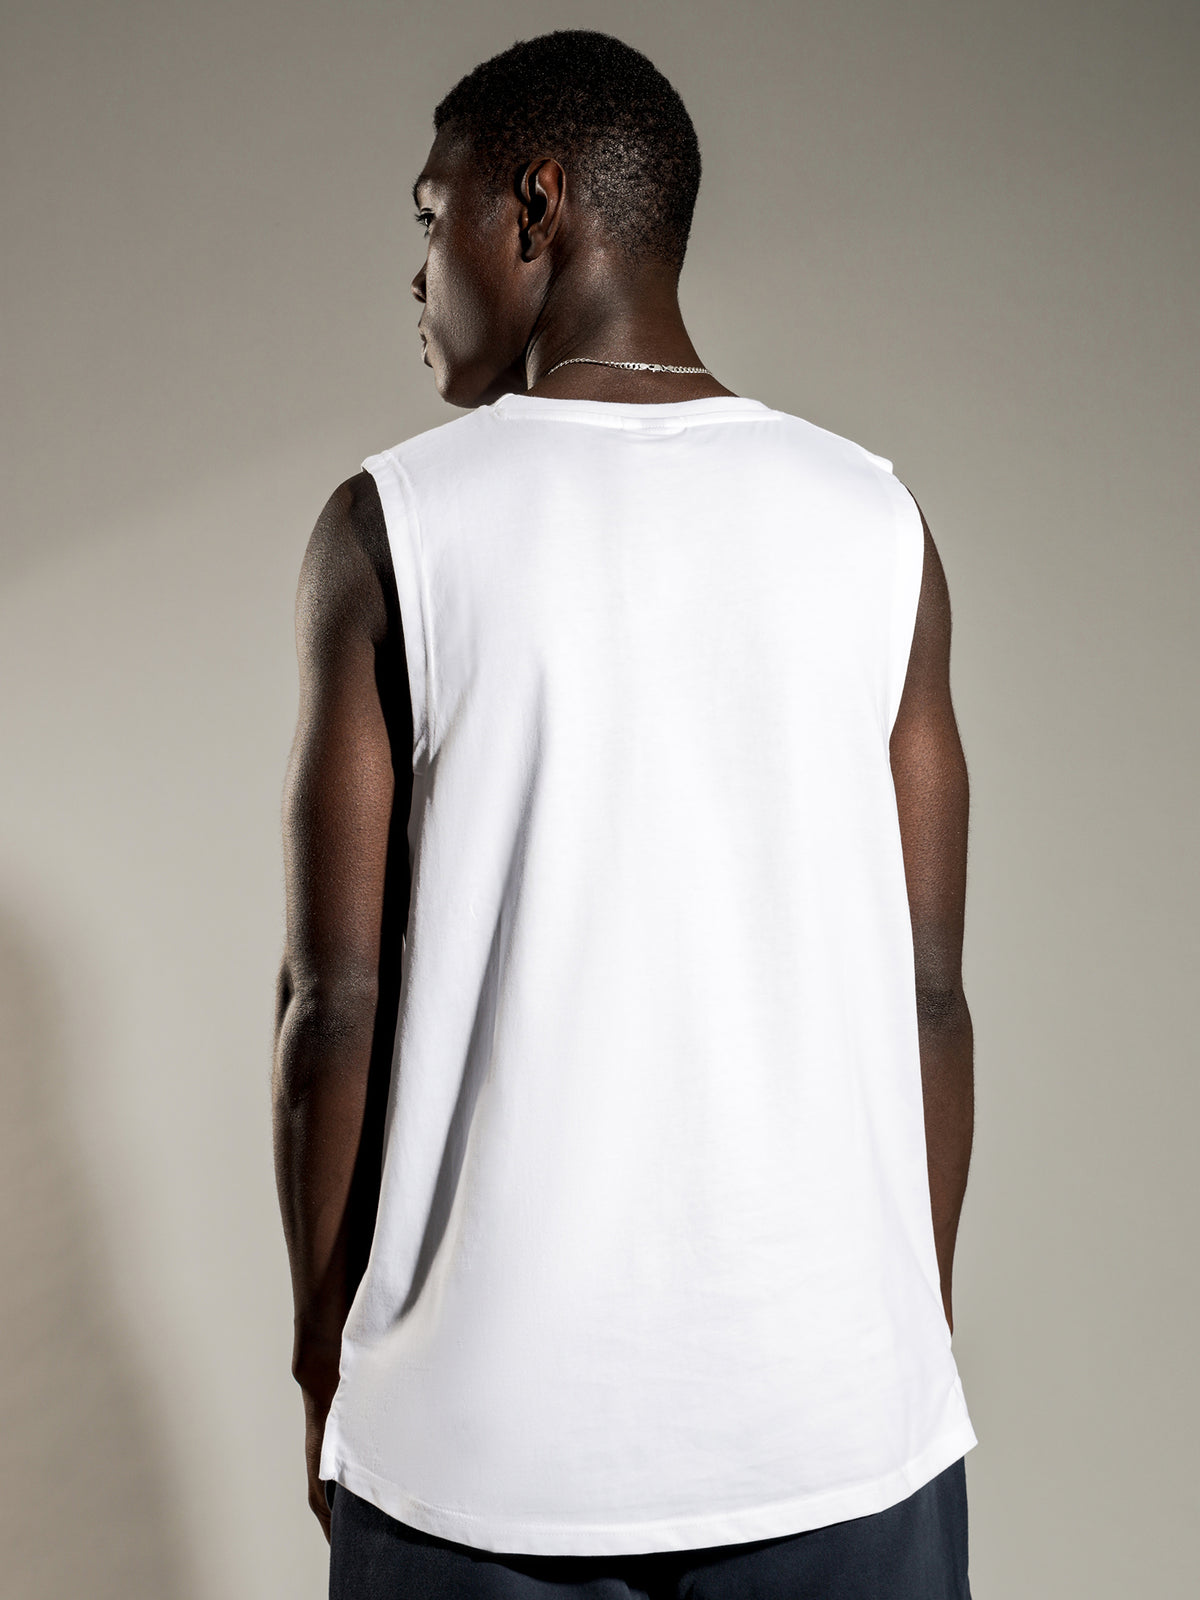 Terri Vest Muscle T-Shirt in White